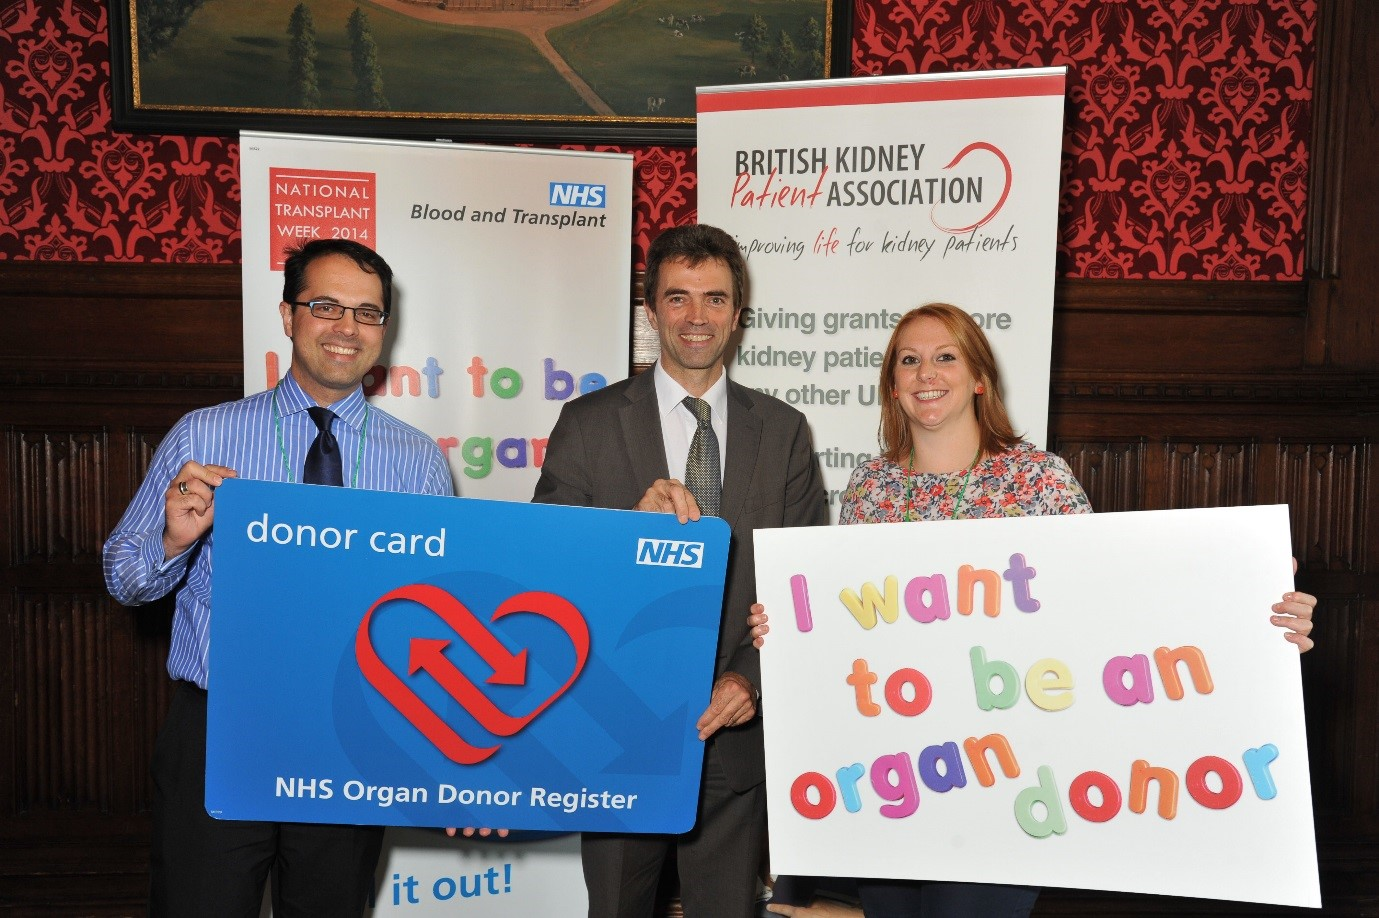 Spell out your organ donation decision – says Brake